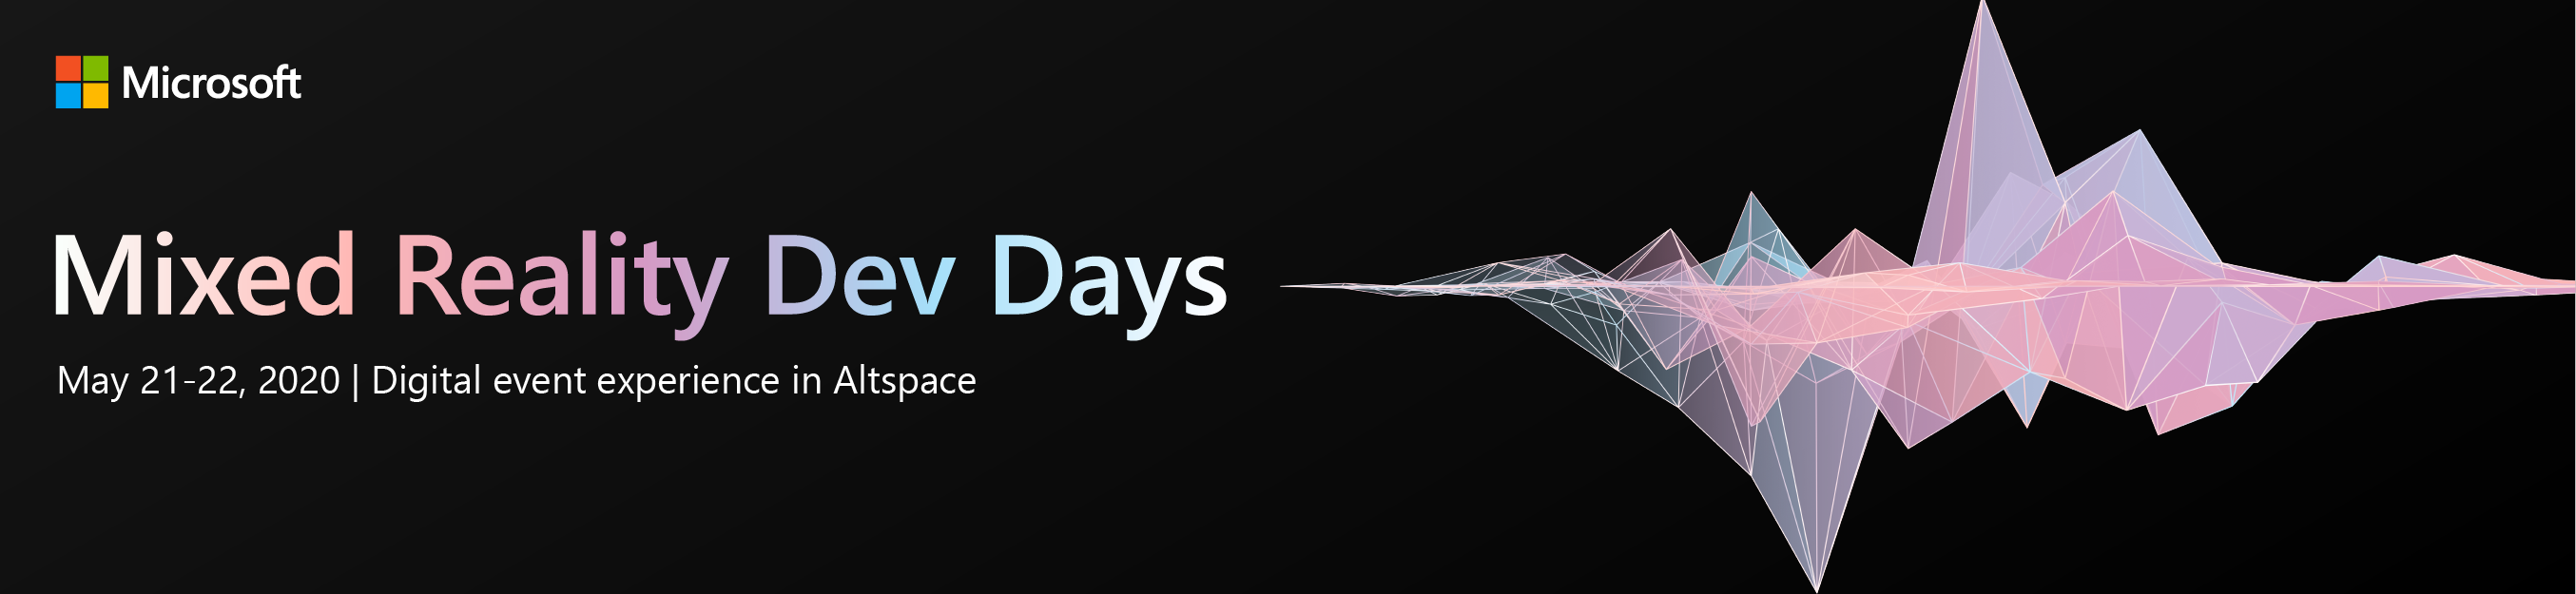 Mixed Reality Dev Days